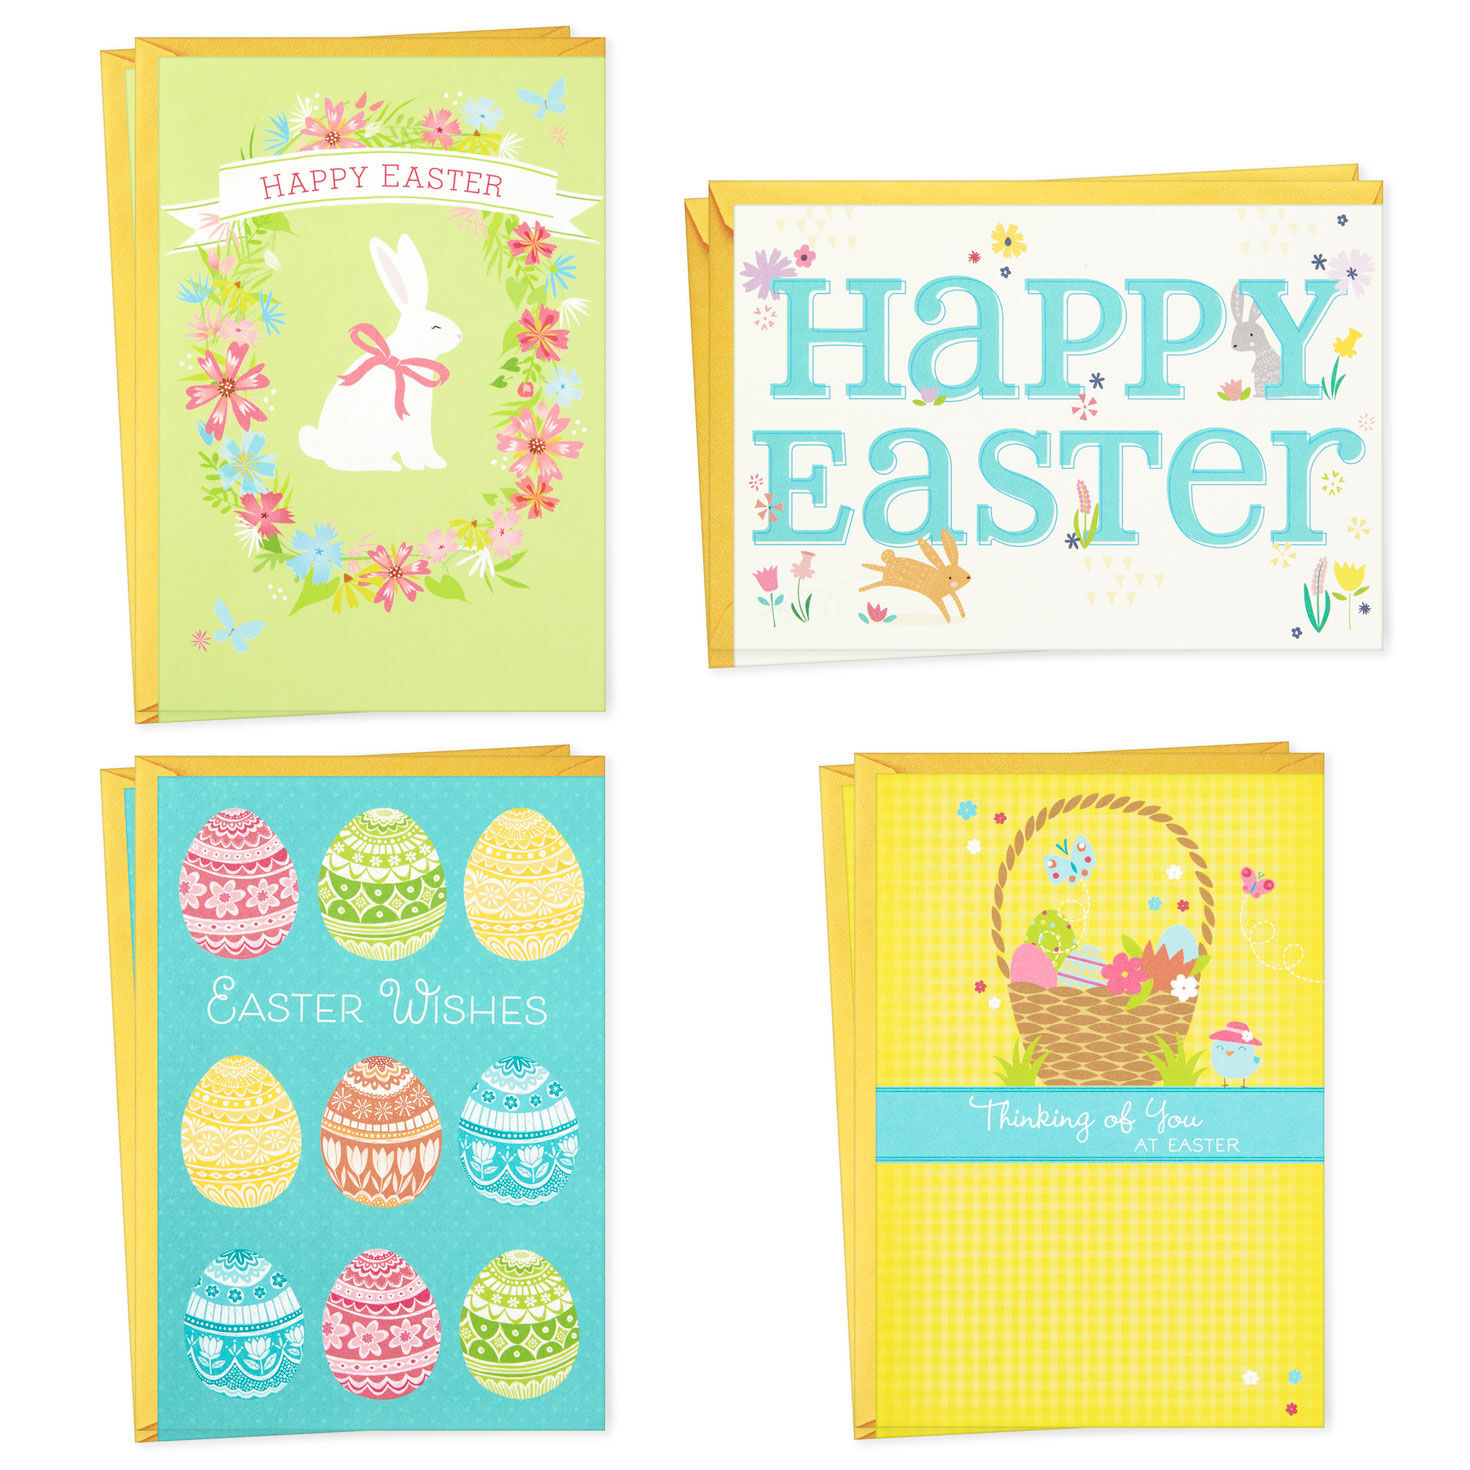 WARM WISHES Greeting Cards by HALLMARK Package of 9 BIRTHDAY and other Occasions